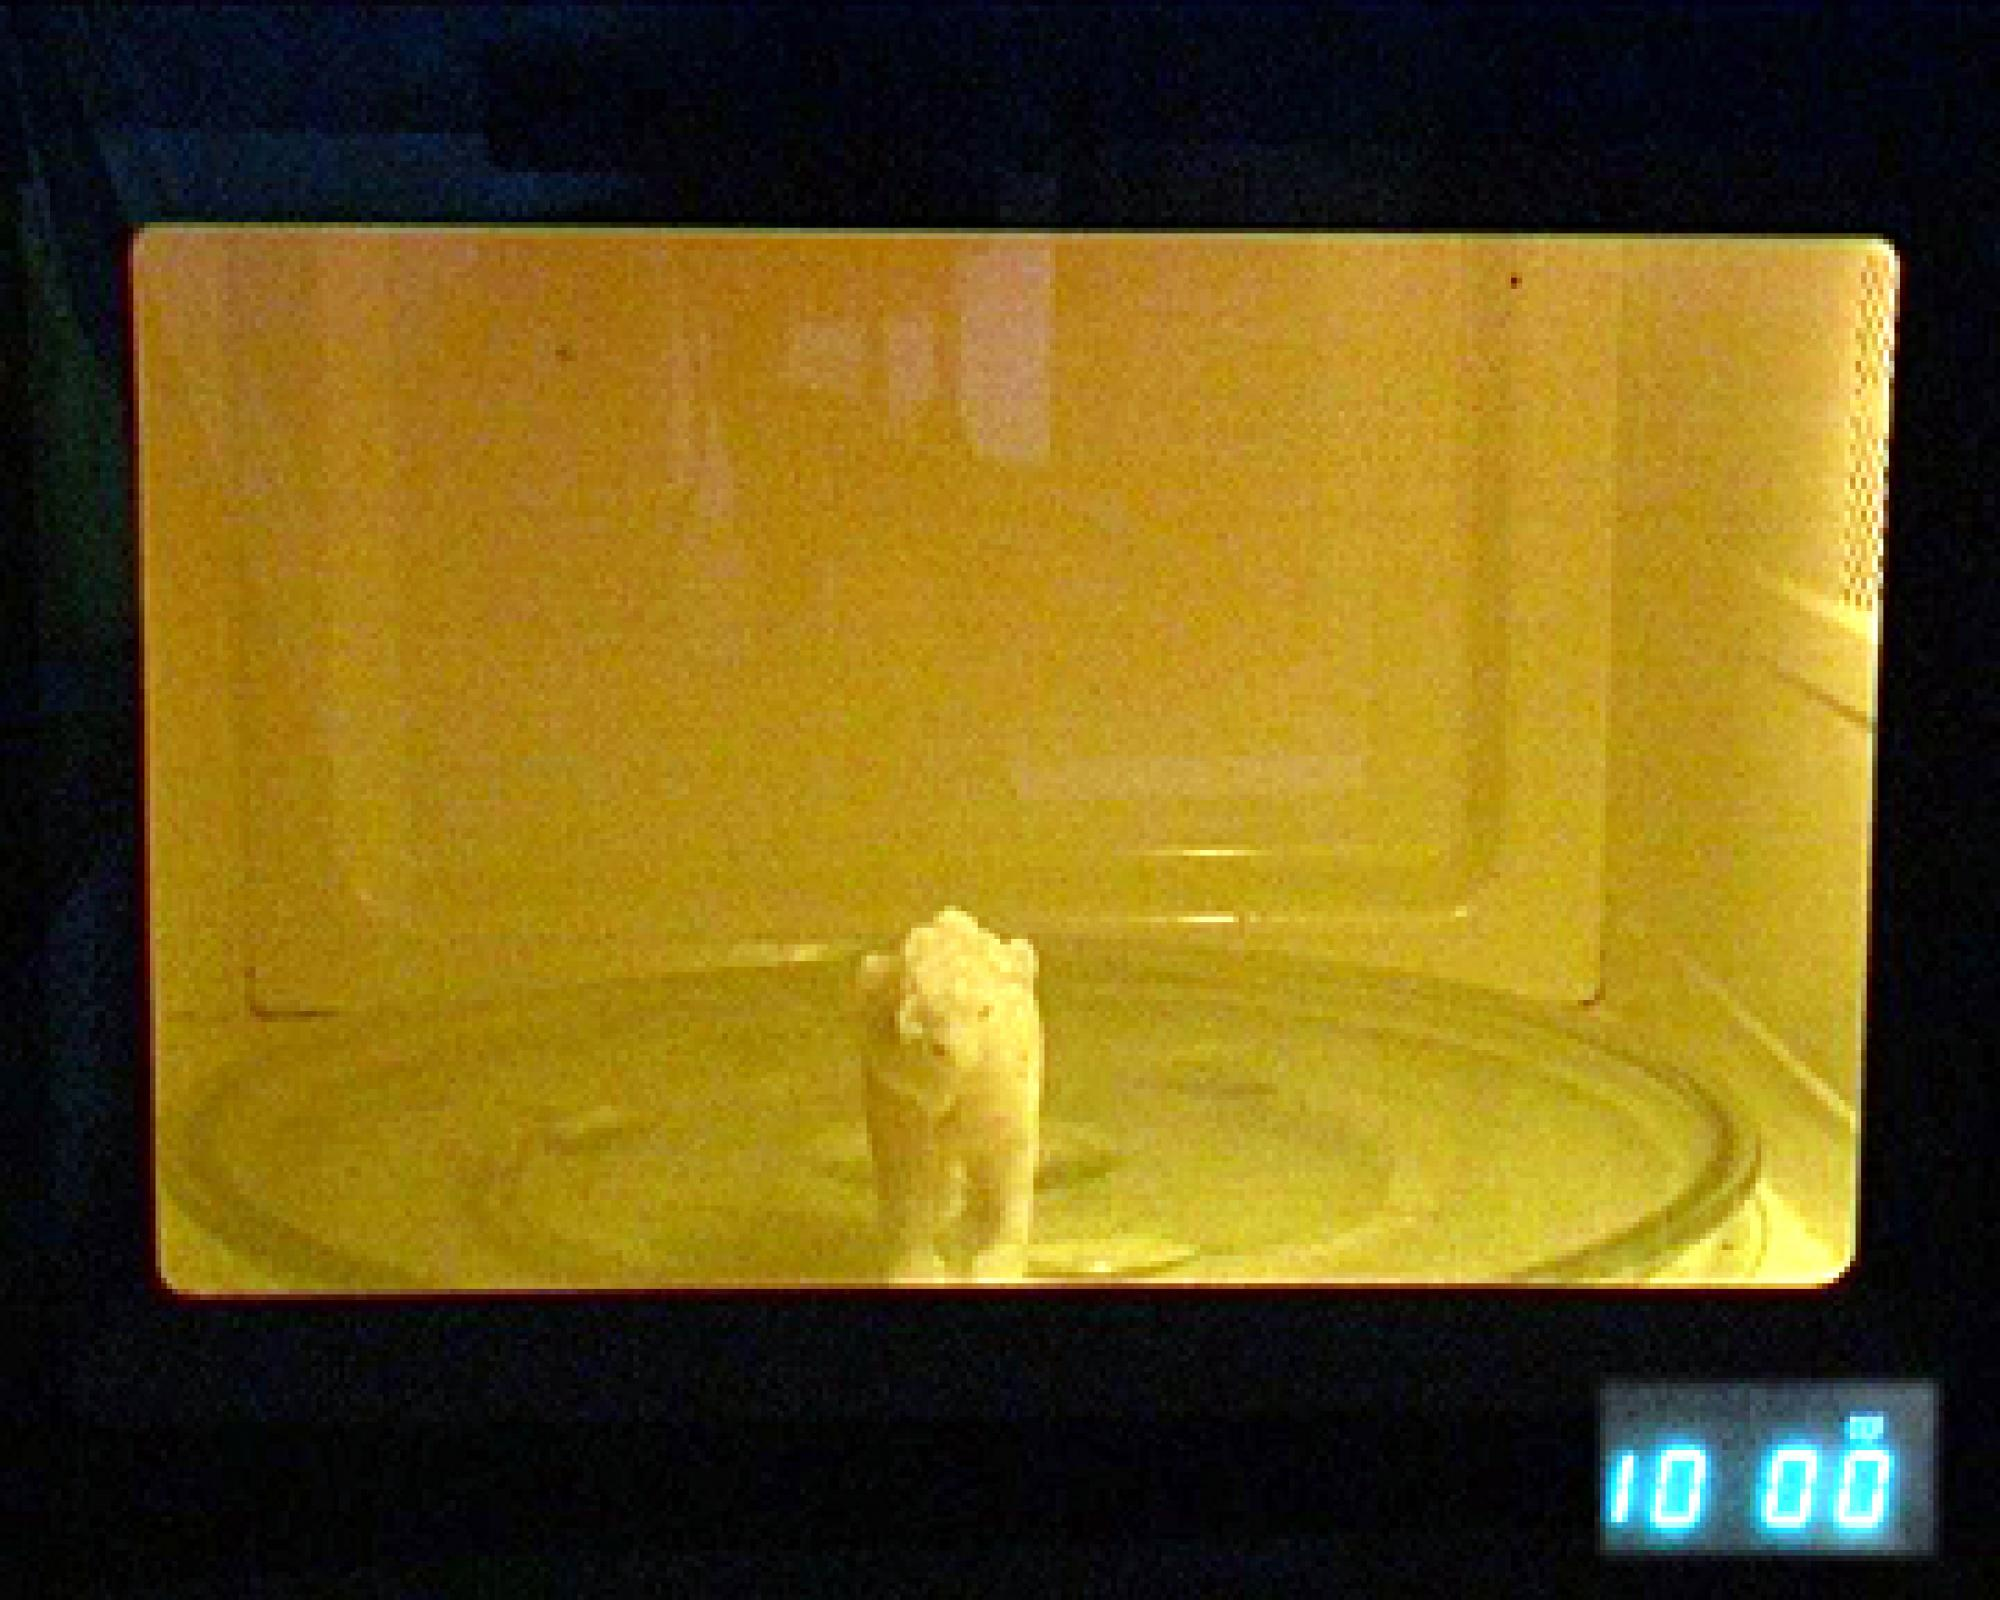 A polar bear popsicle, or 'polarsicle,' created from a mold made by fine arts graduate student Chika Matsuda, awaits its fate in a microwave oven. Matsuda will dispense polarsicles at the Biosphere 2 Earth Day Festival as an activity to provoke 'fast food